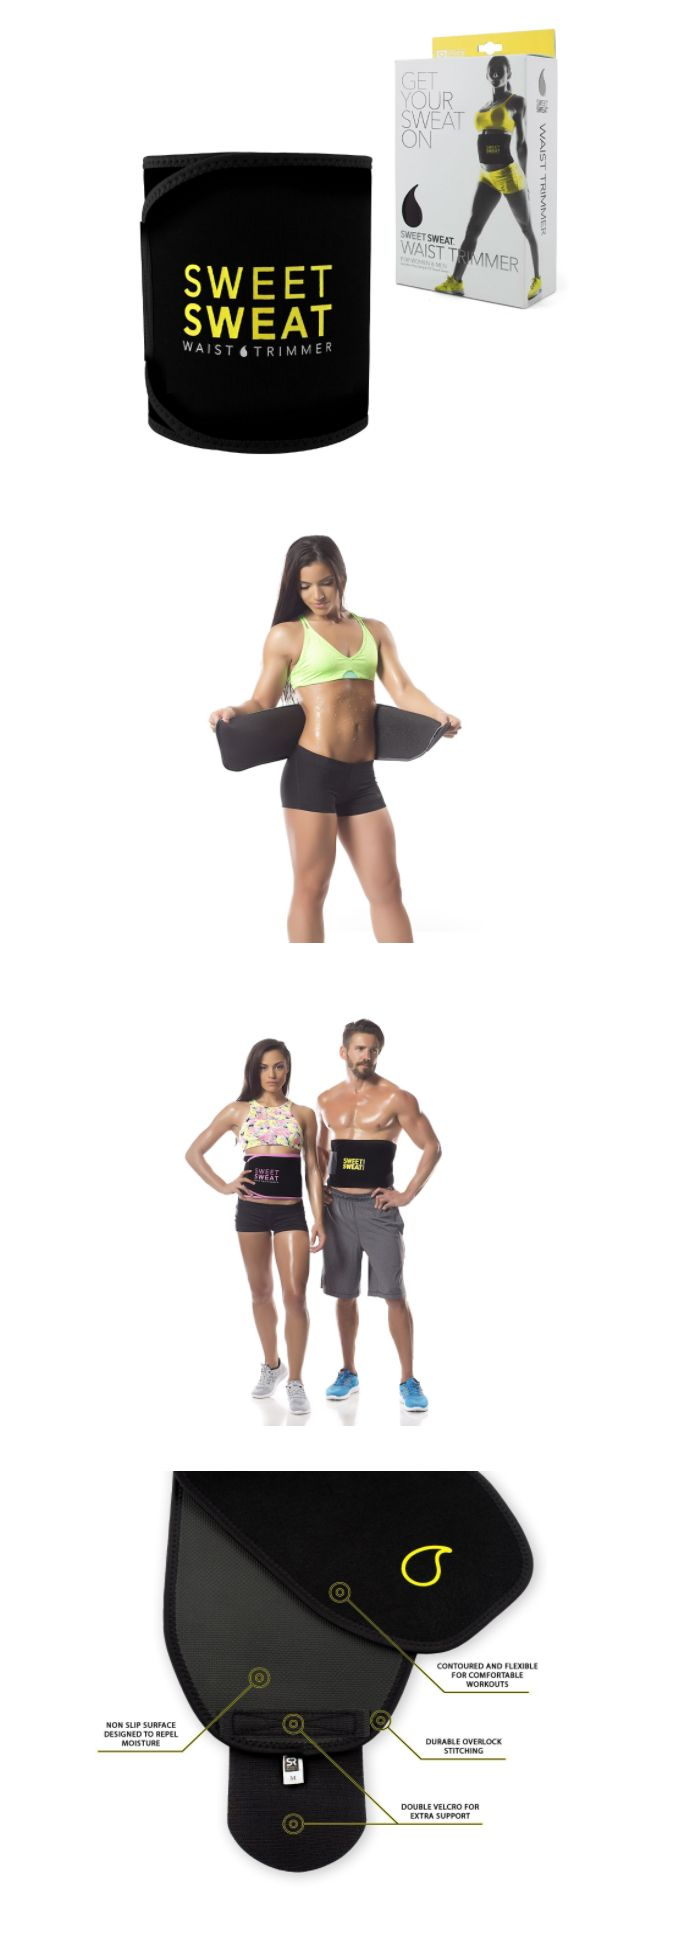 Toning Belts 57273: Sweat Band Wrap Waist Trimmer Belt Tummy Ab Weight Loss Fat Burner Slimming Burn -> BUY IT NOW ONLY: $31.5 on eBay!